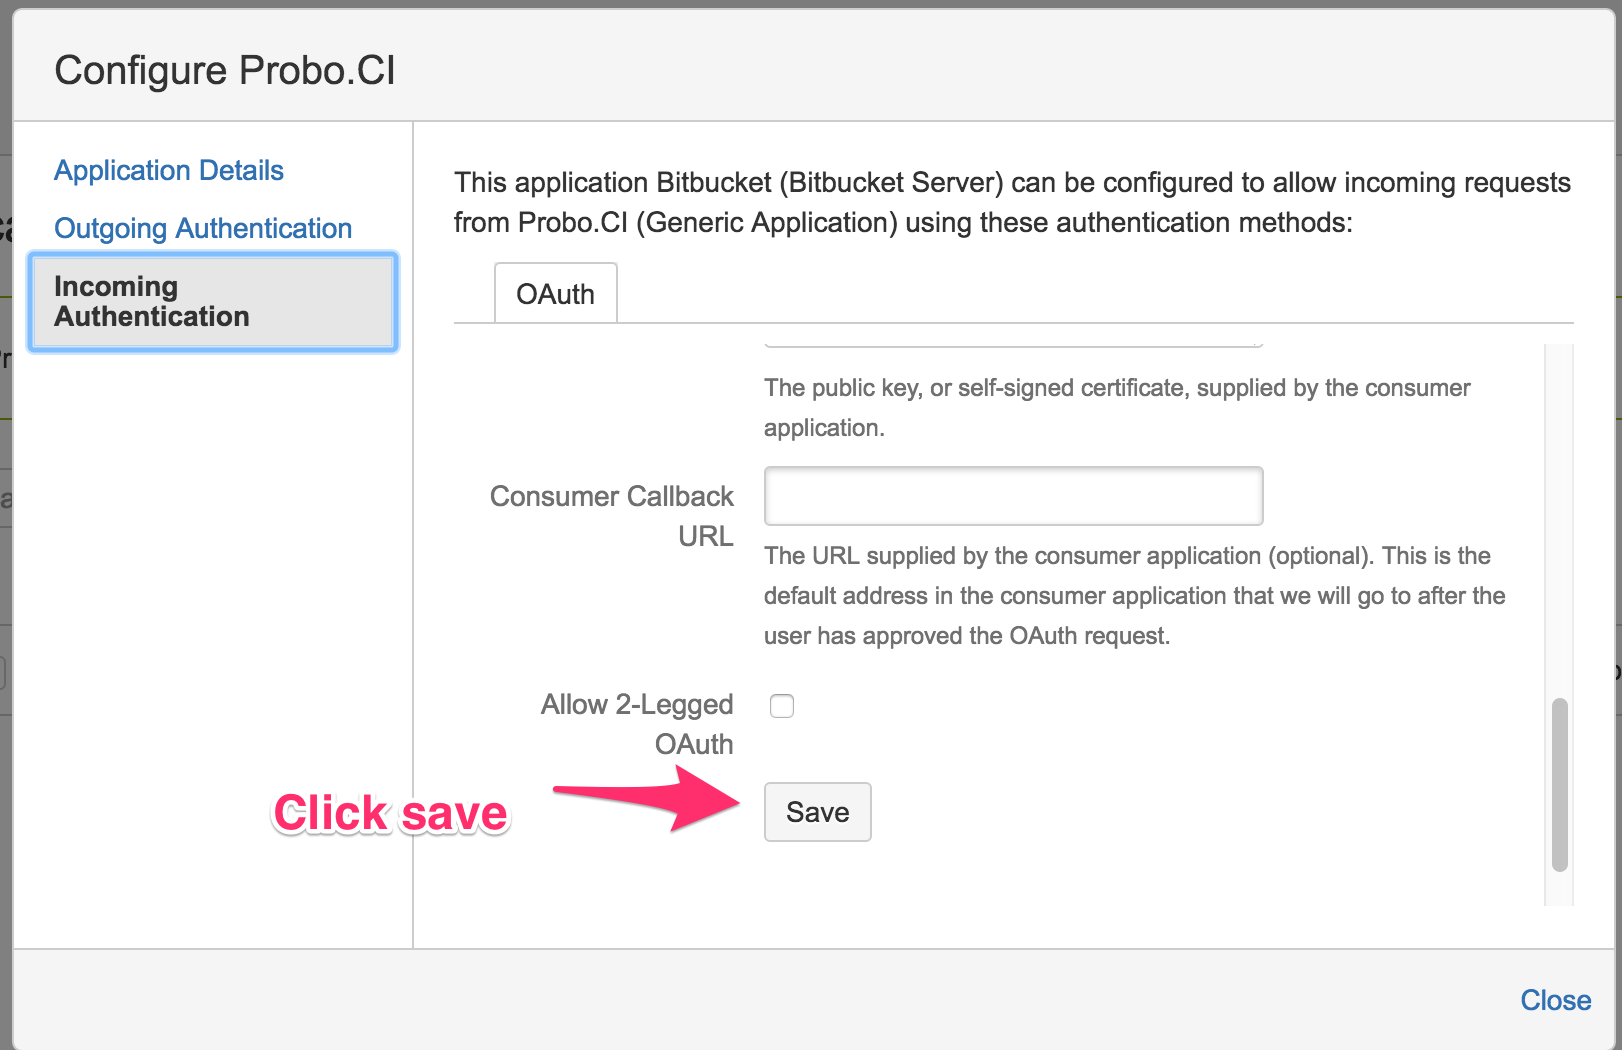 Arrow pointing to the Save button on the Bitbucket Server Incoming Authentication form.